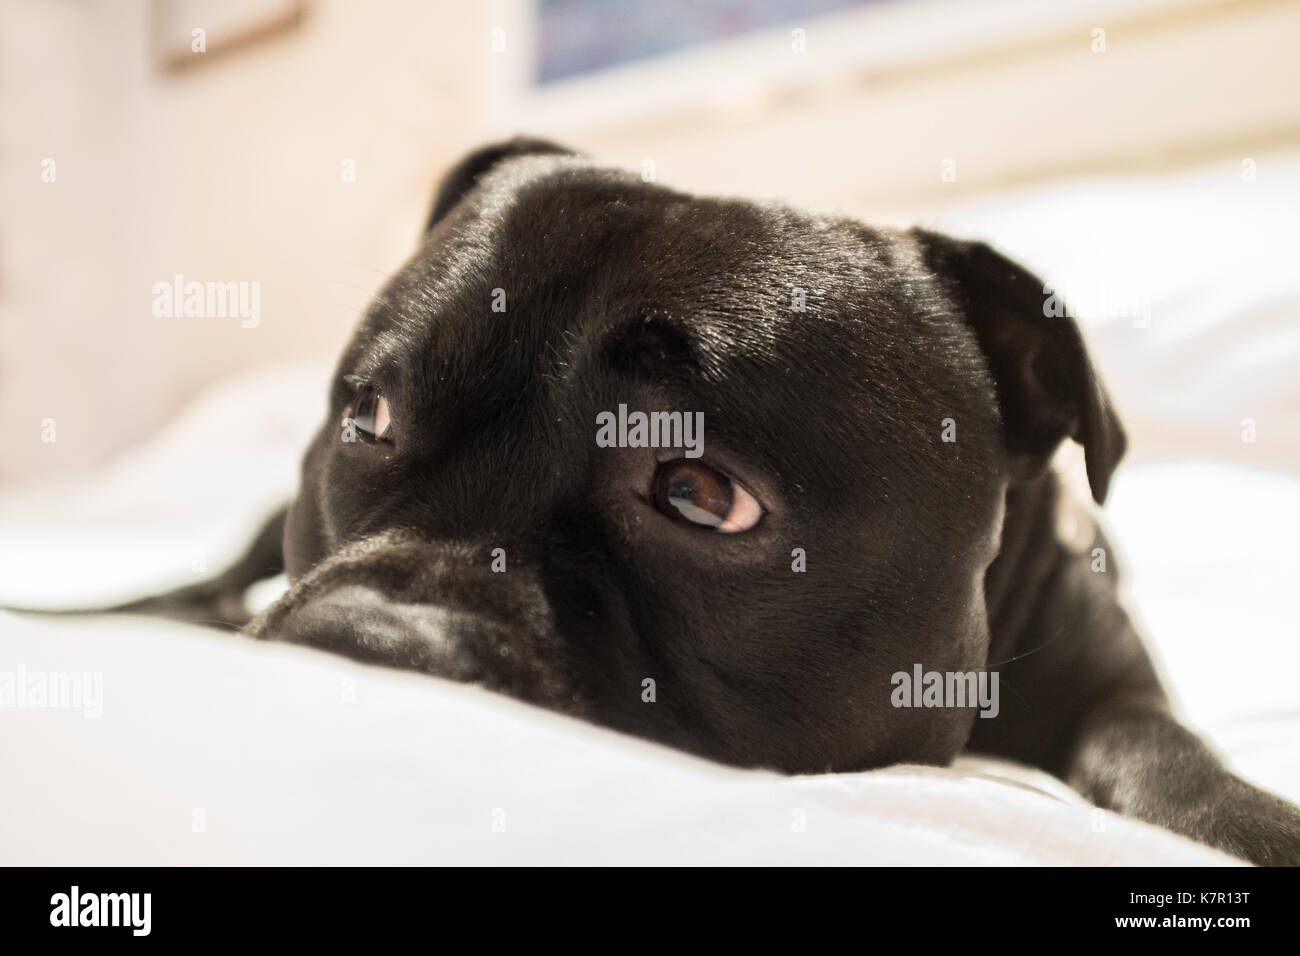 cute staffordshire bull terrier dog lying on a white bed with raised eye brows and showing the white of his eye. He looks a little bit sorry, sad or g - Stock Image